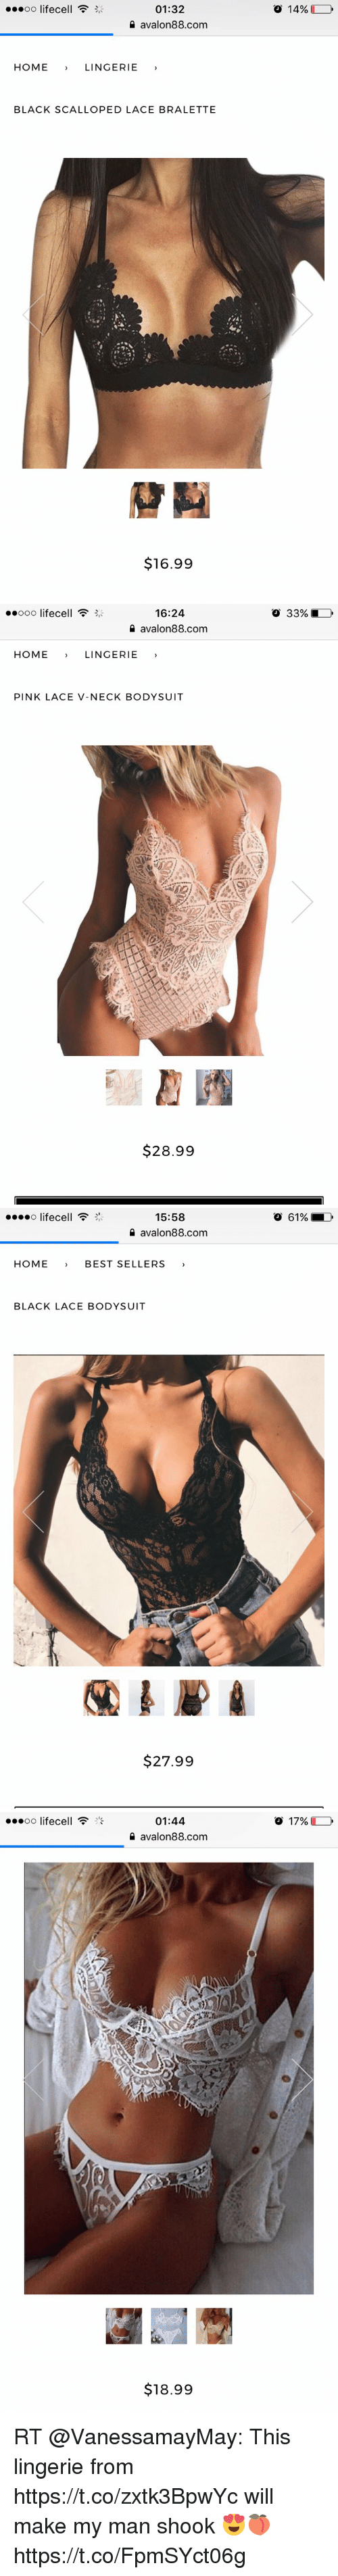 """Memes, Best, and Black: O 14%  01:32  avalon88.com  HOME  LINGERIE  BLACK SCALLOPED LACE BRALETTE  $16.99   16:24  avalon88.com  o 33%  HOMELINGERIE  PINK LACE V-NECK BODYSUIT  $28.99   15:58  1 avalon88.com  o lifecell """"  o 61%  HOME BEST SELLERS  BLACK LACE BODYSUIT  $27.99   ..oo lifecell  01:44  1 avalon88.com  17%  $18.99 RT @VanessamayMay: This lingerie from https://t.co/zxtk3BpwYc will make my man shook 😍🍑 https://t.co/FpmSYct06g"""